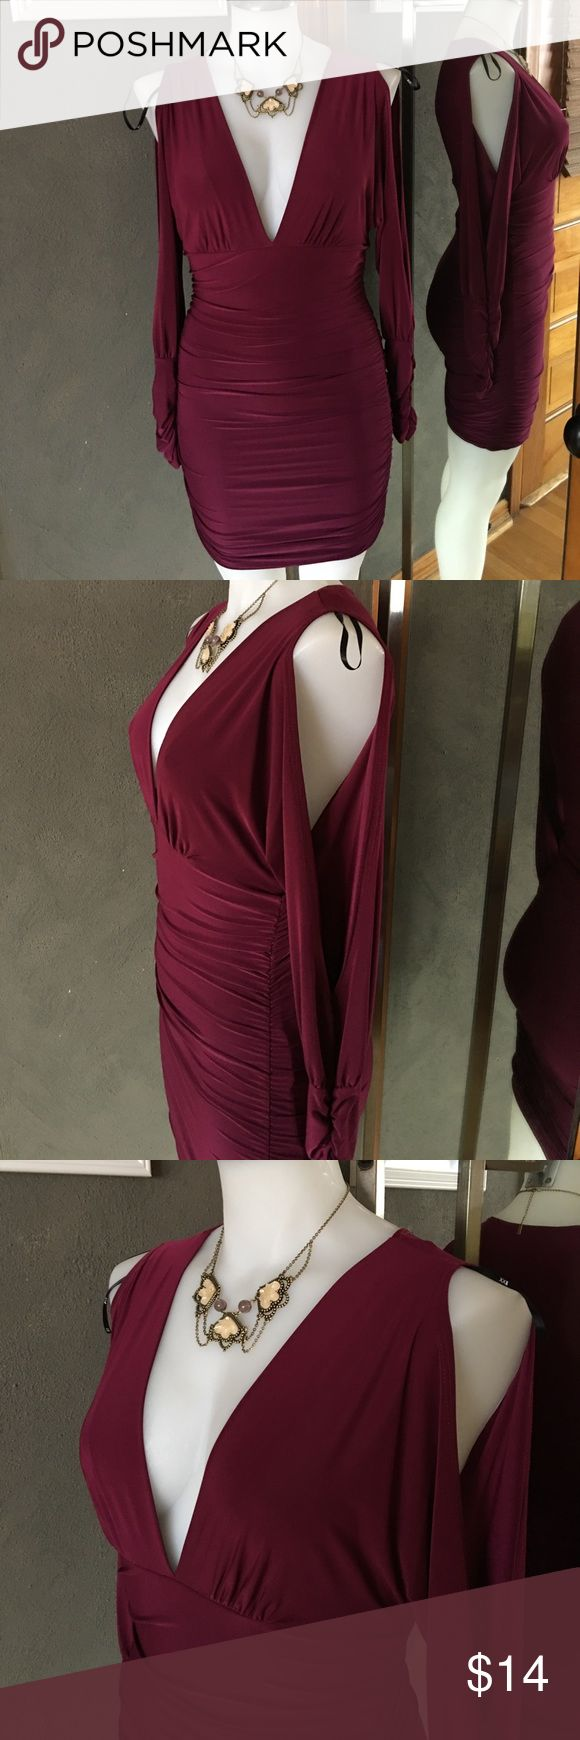 Wine color slit long sleeve shirred bodycon dress NWOT beautiful wine colored dress in slinky material, shirred from waist down for an adjustable length, bare shoulder- slit open sleeve from shoulder to wrist then ruched at wrist. V low neckline. Never worn-no damage no flaws. Skirt part is lined with another layer of fabric for no show. 94%polyester 6% spandex so it does have some stretch Forever 21 Dresses Long Sleeve